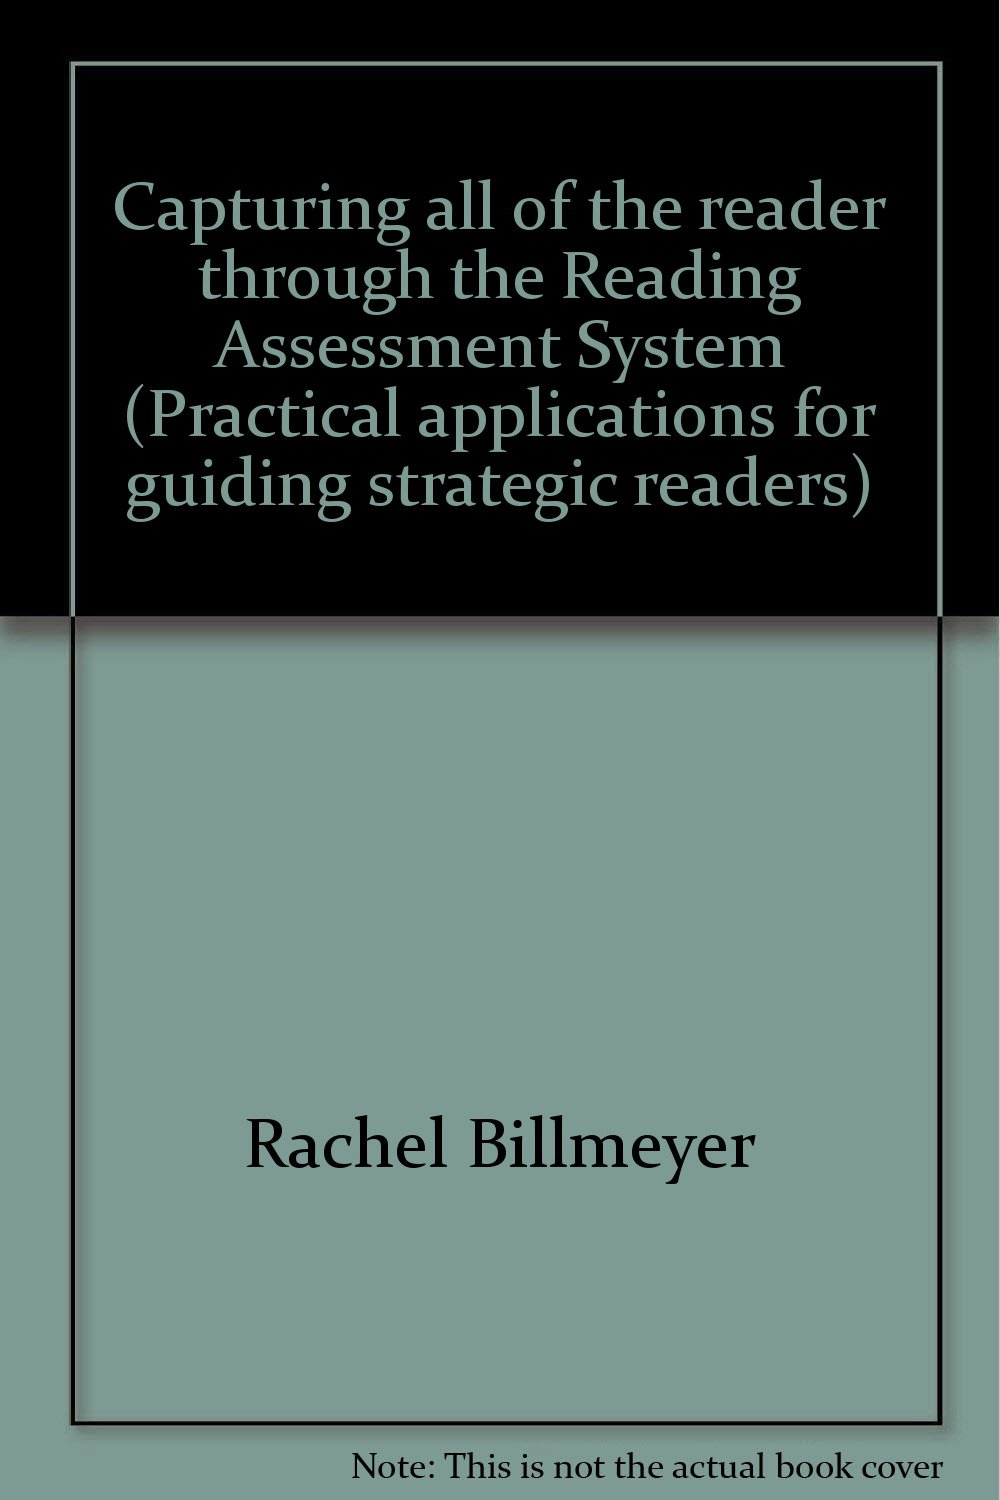 Download Capturing all of the reader through the Reading Assessment System (Practical applications for guiding strategic readers) ebook